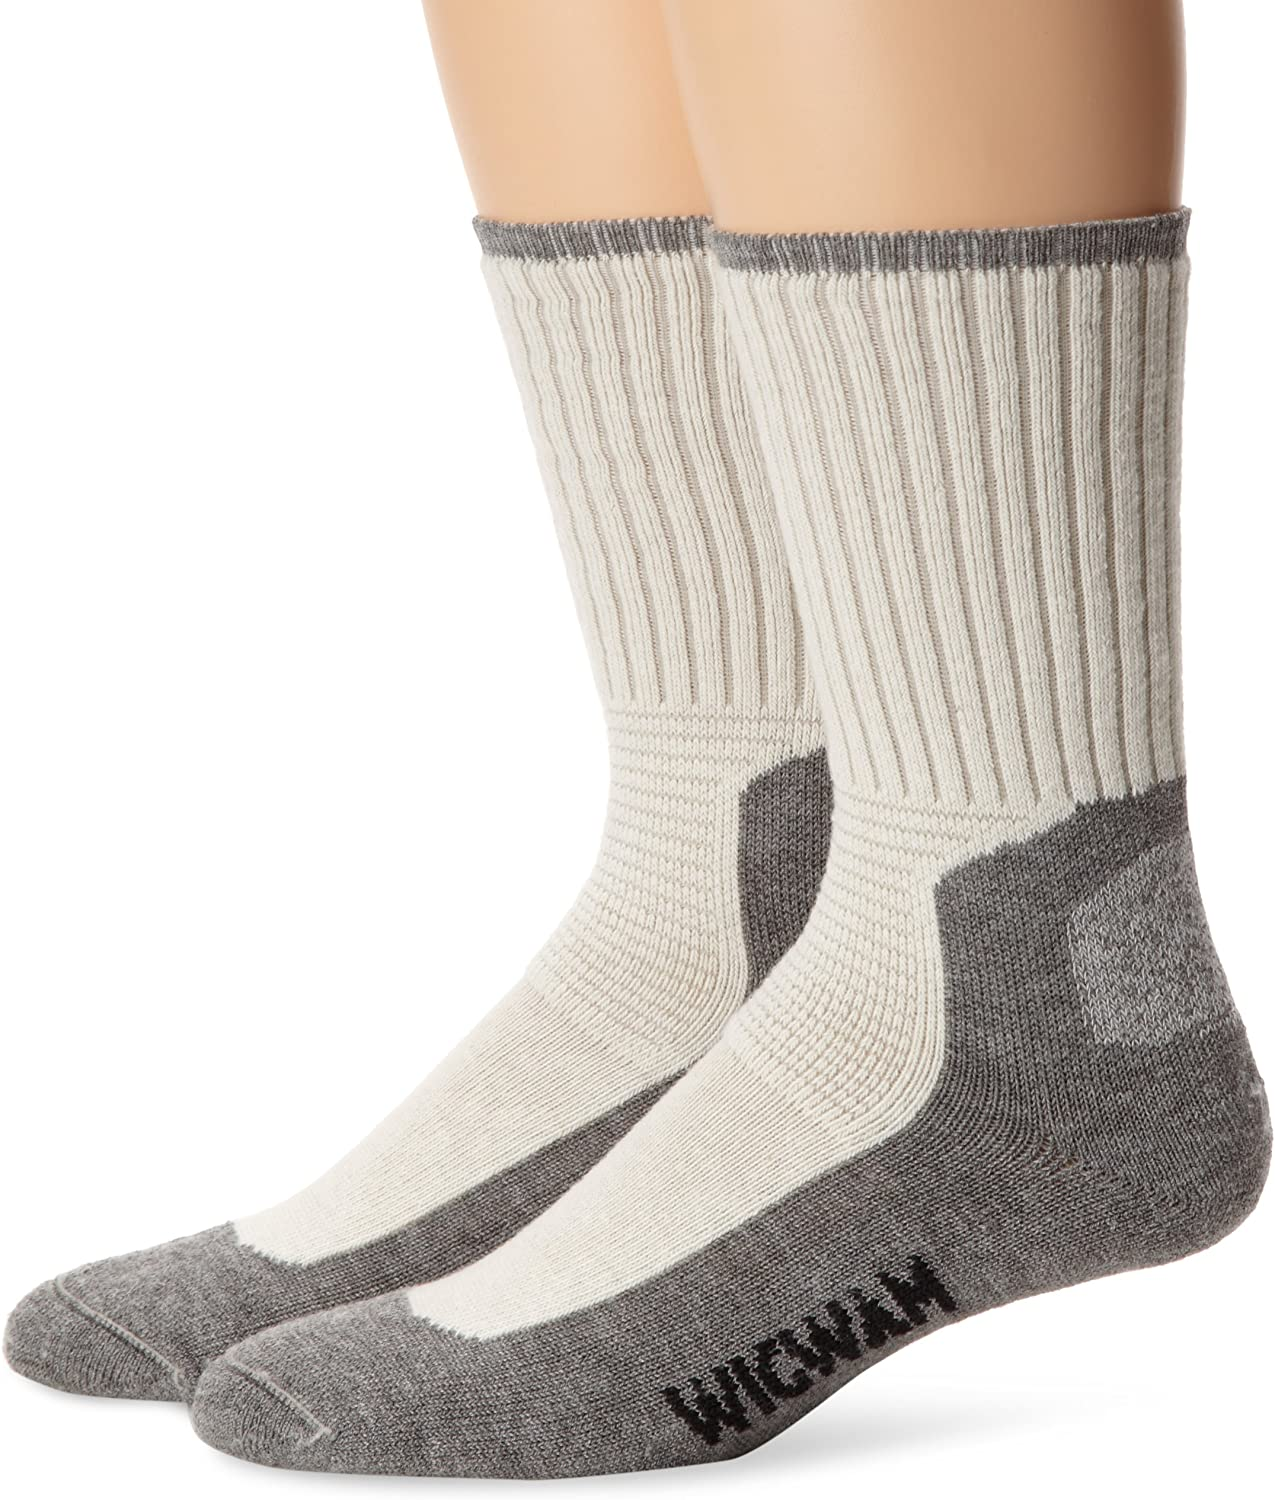 Wigwam At Work Durasole Pro 2-Pack S1349 Sock